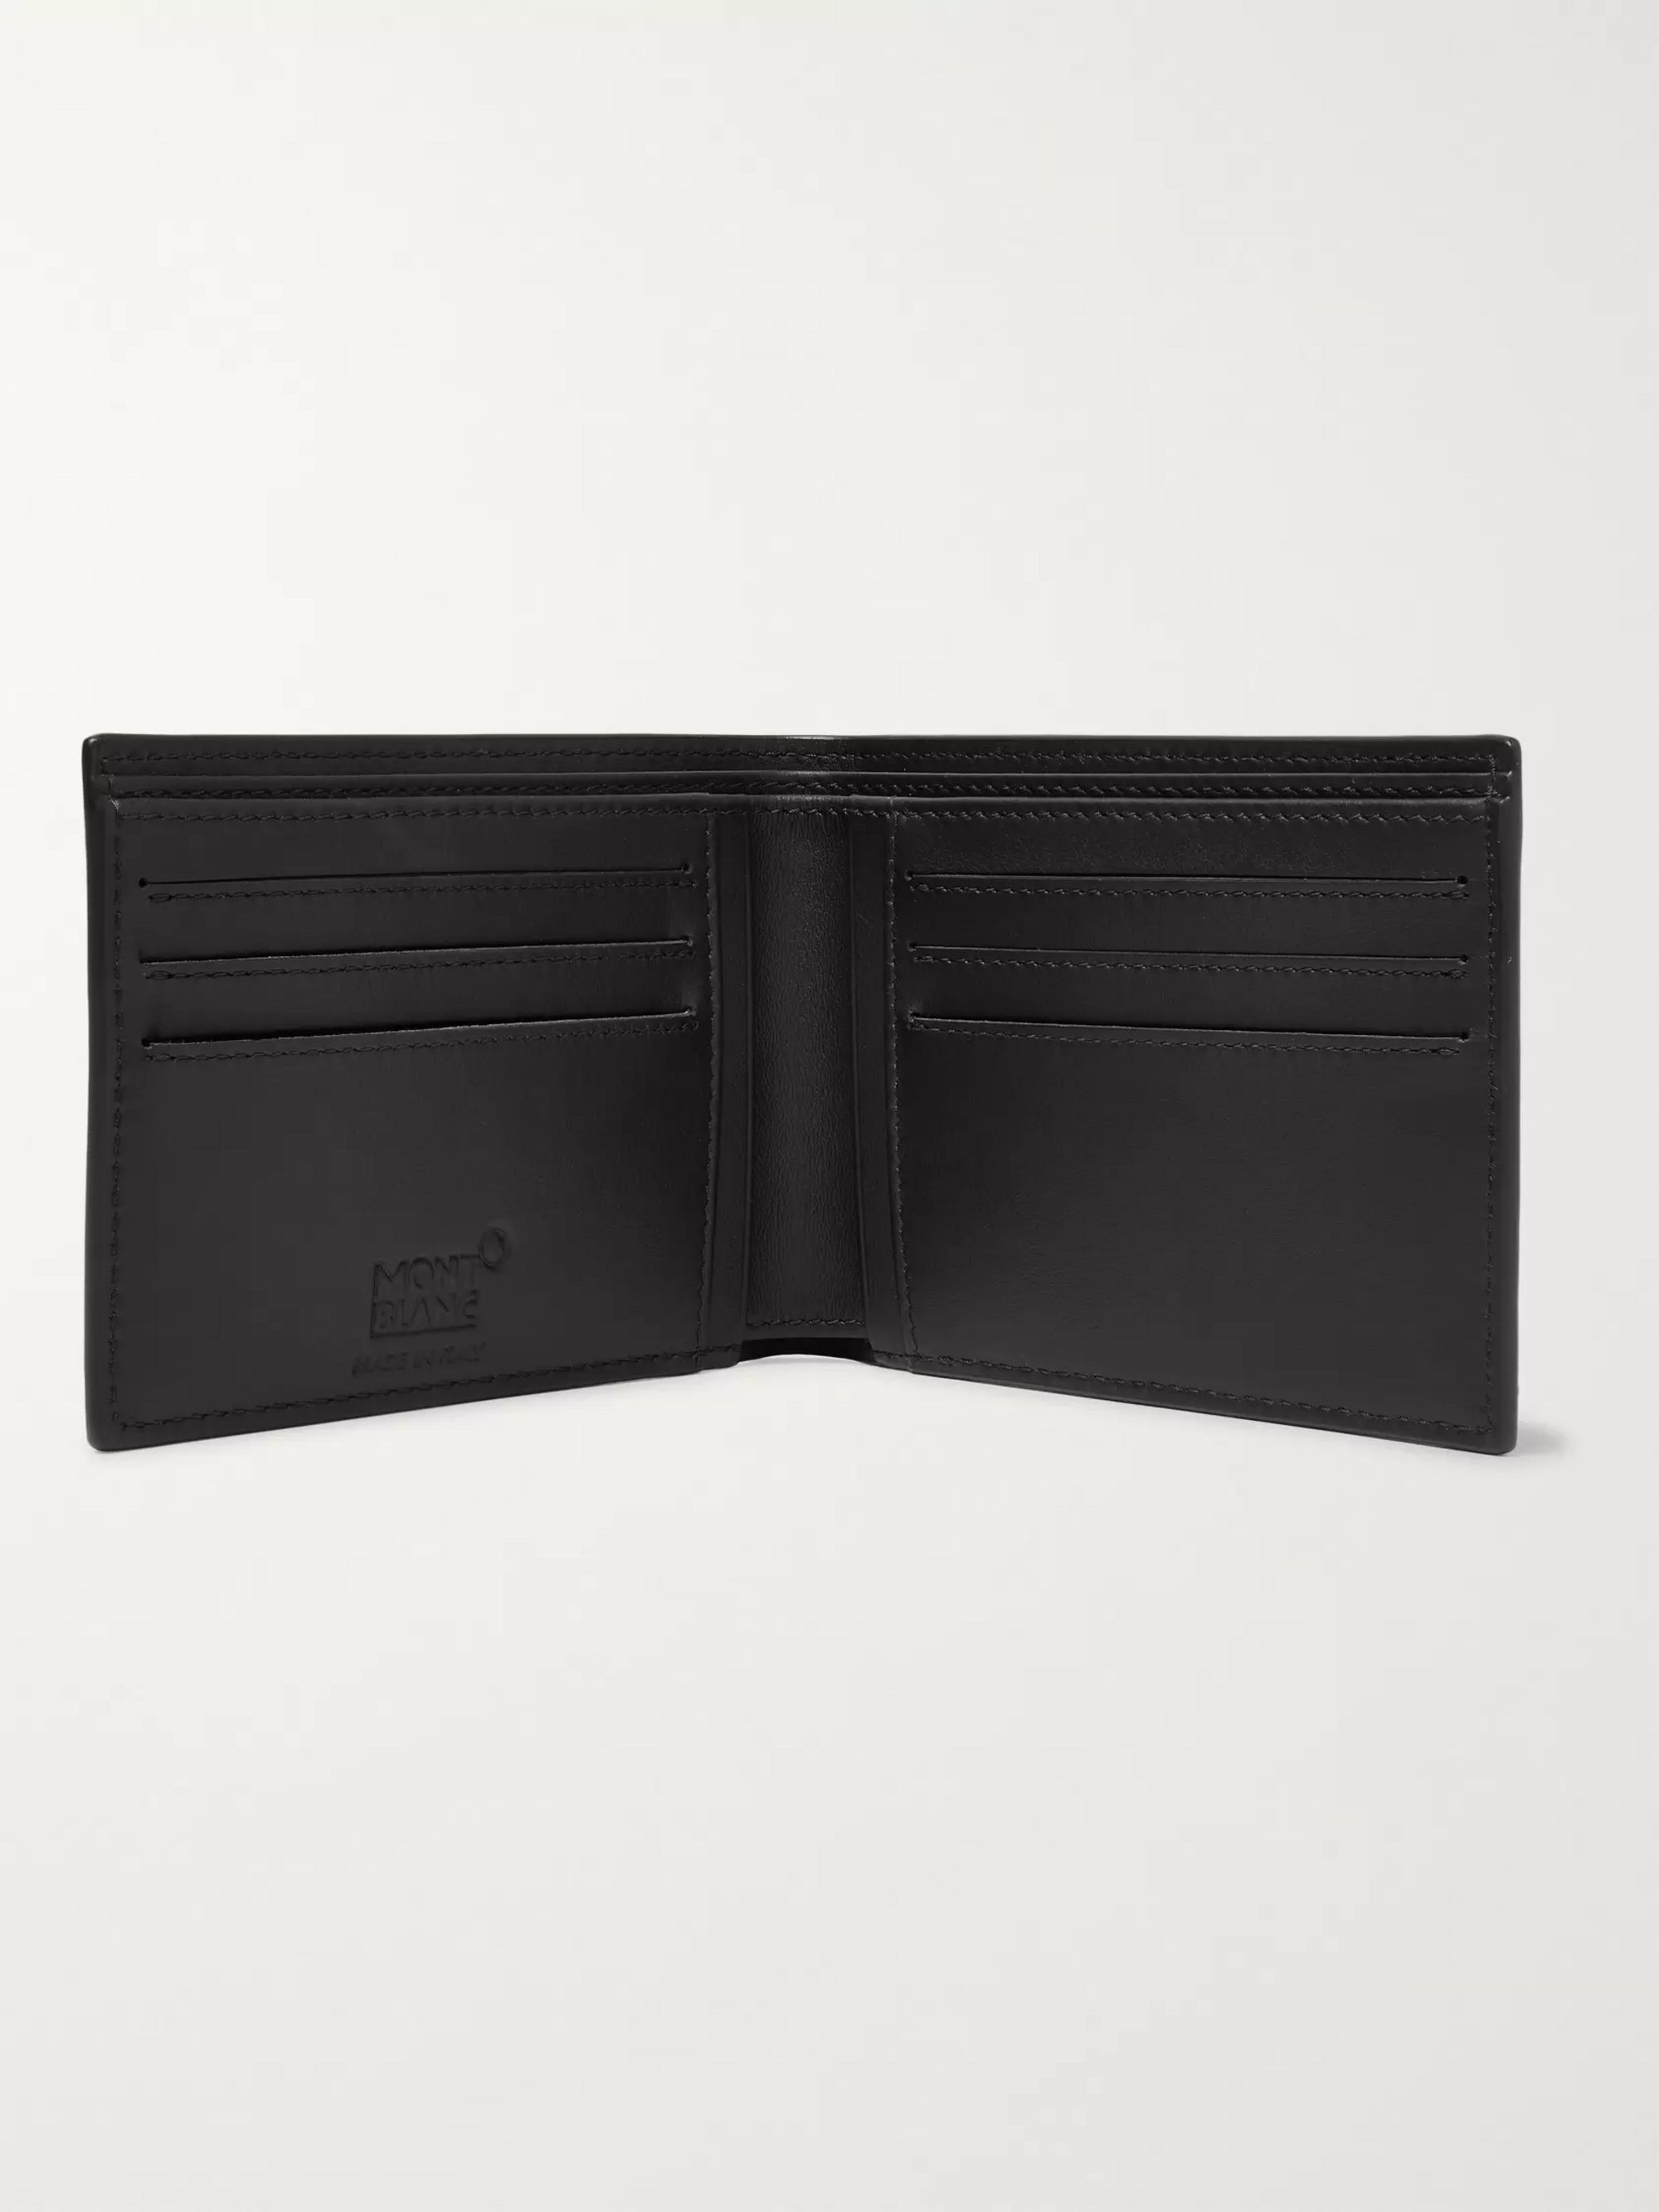 Montblanc Westside Extreme Textured-Leather Billfold Wallet